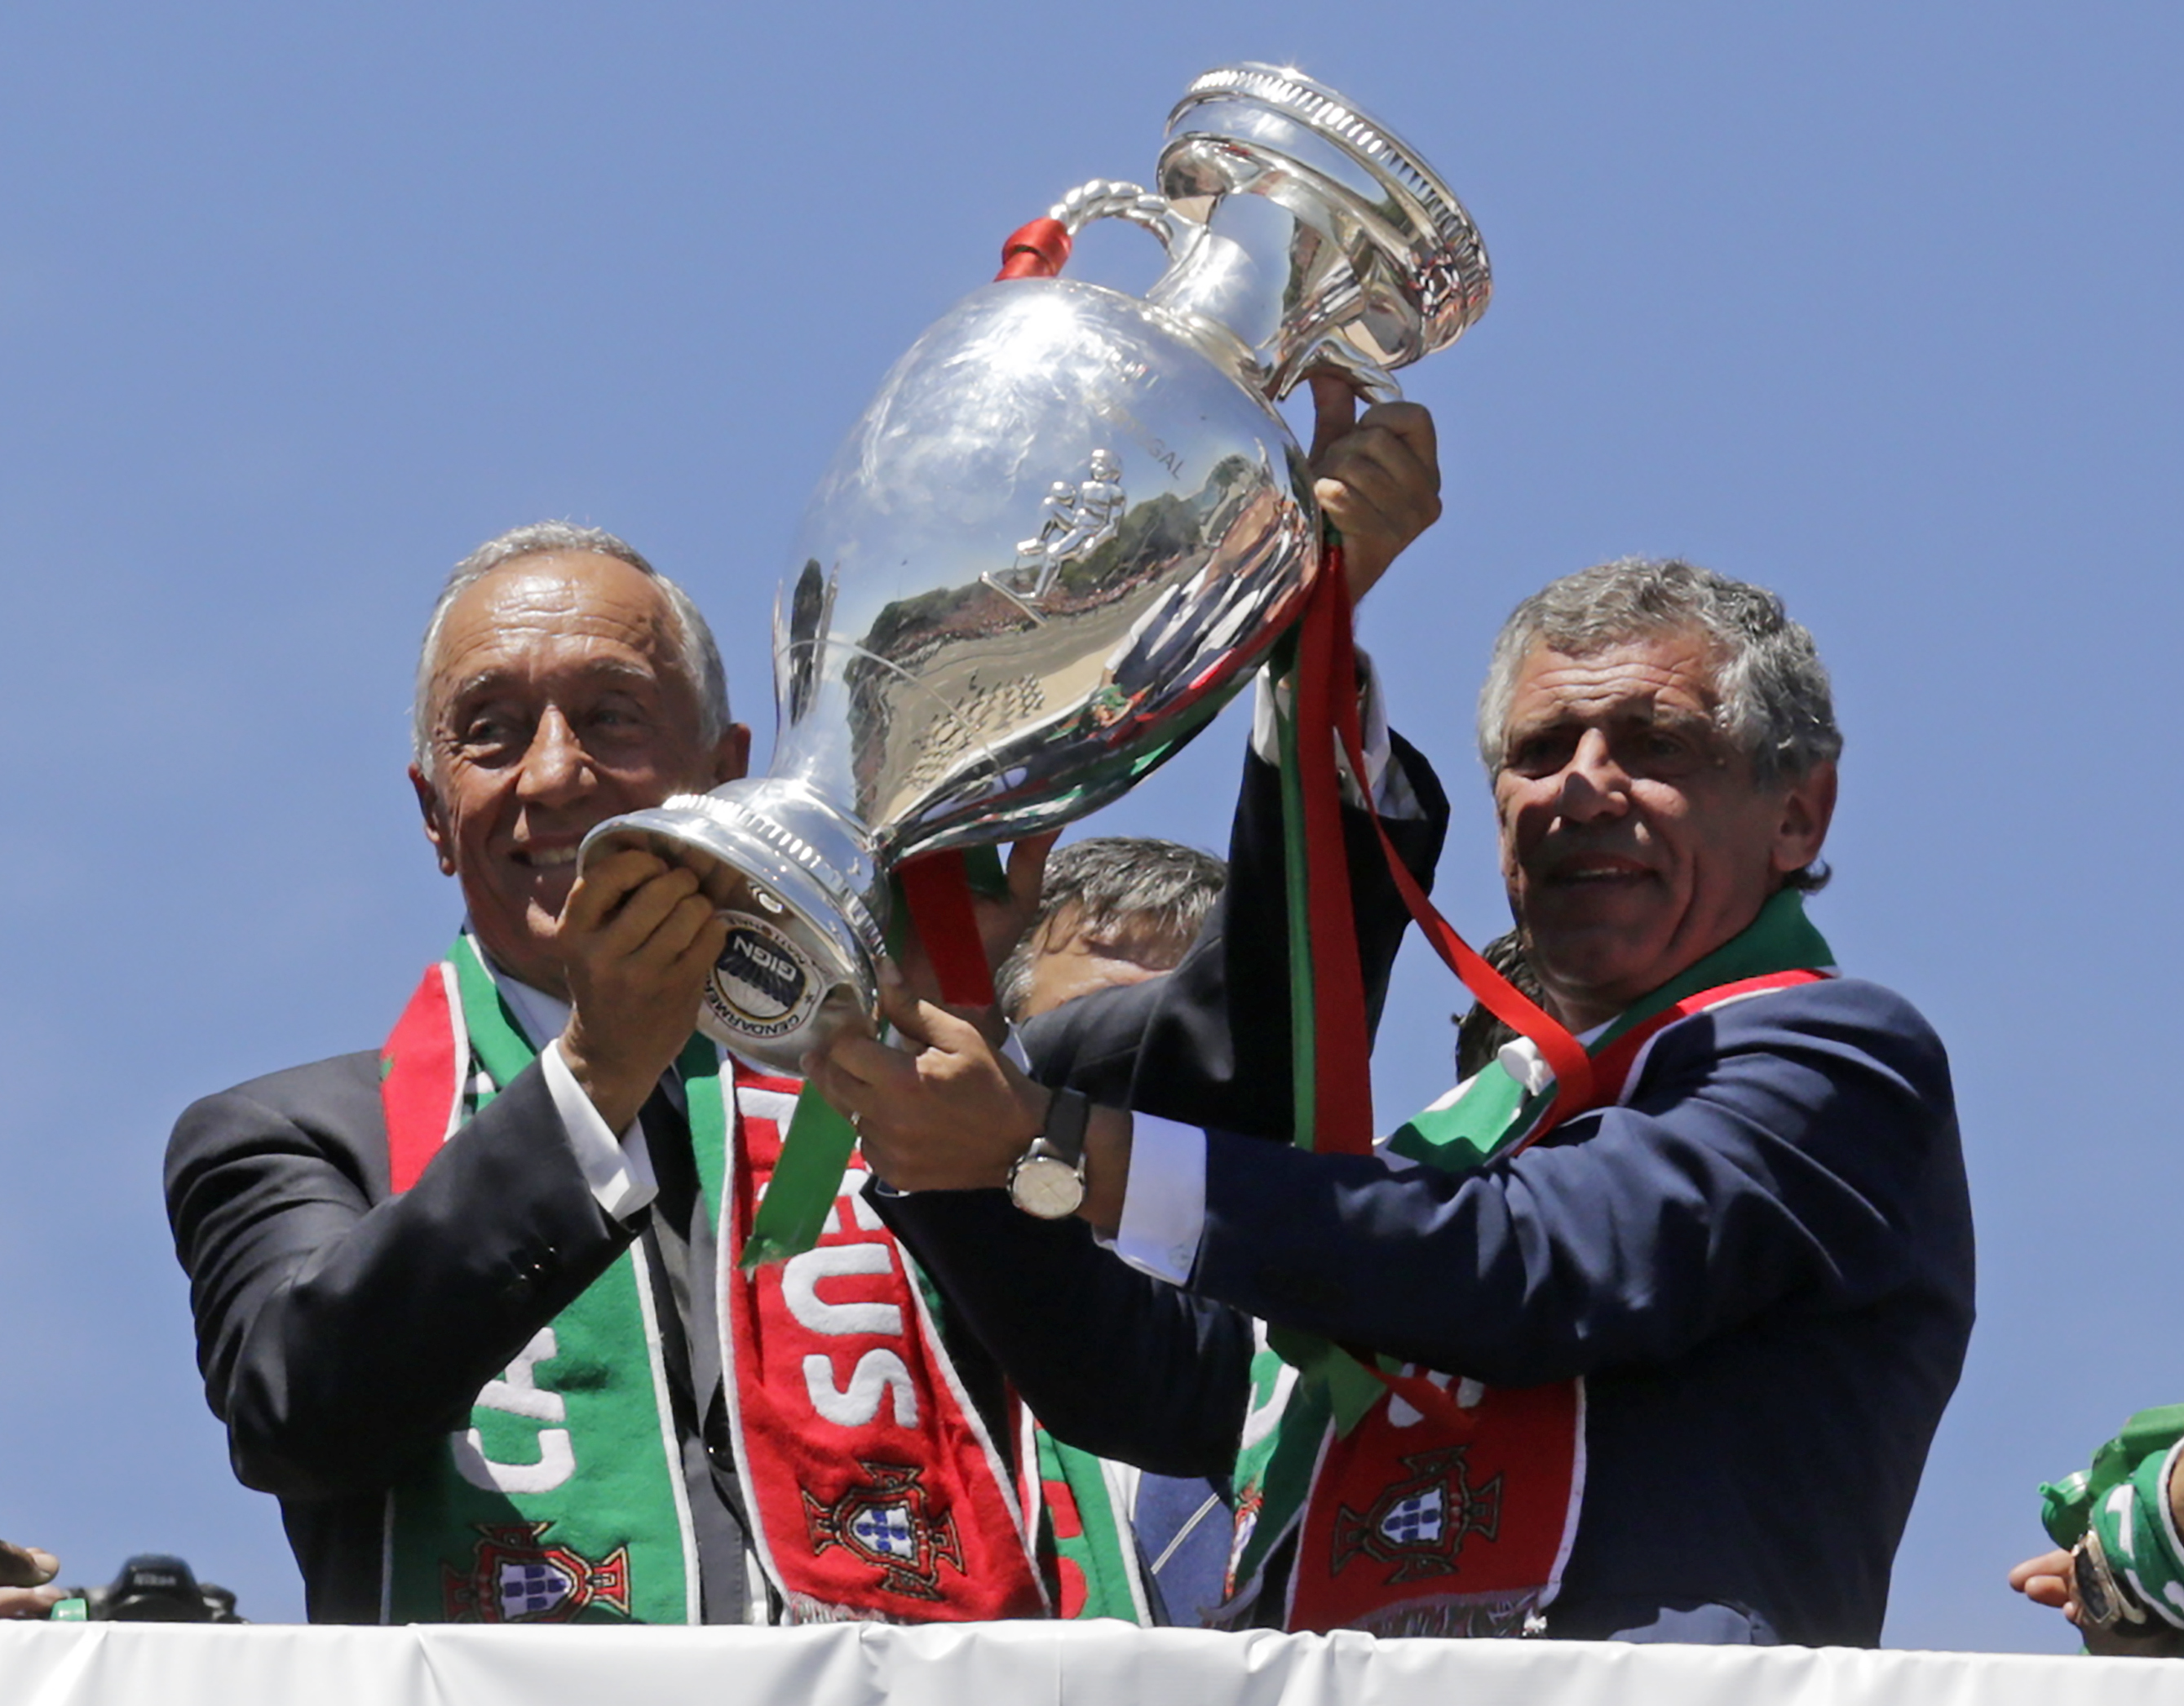 Portugal's president Marcelo Rebelo de Sousa (L) and Portugal's coach Fernando Santos hold the trophy on the balcony of the Belem Palace as they celebrate their victory on July 11, 2016 after their Euro 2016 final football win over France yesterday. The Portuguese football team led by Cristiano Ronaldo returned home to a heroes' welcome today after their upset 1-0 win triumph over France in the Euro 2016 final.  / AFP PHOTO / JOSE MANUEL RIBEIRO